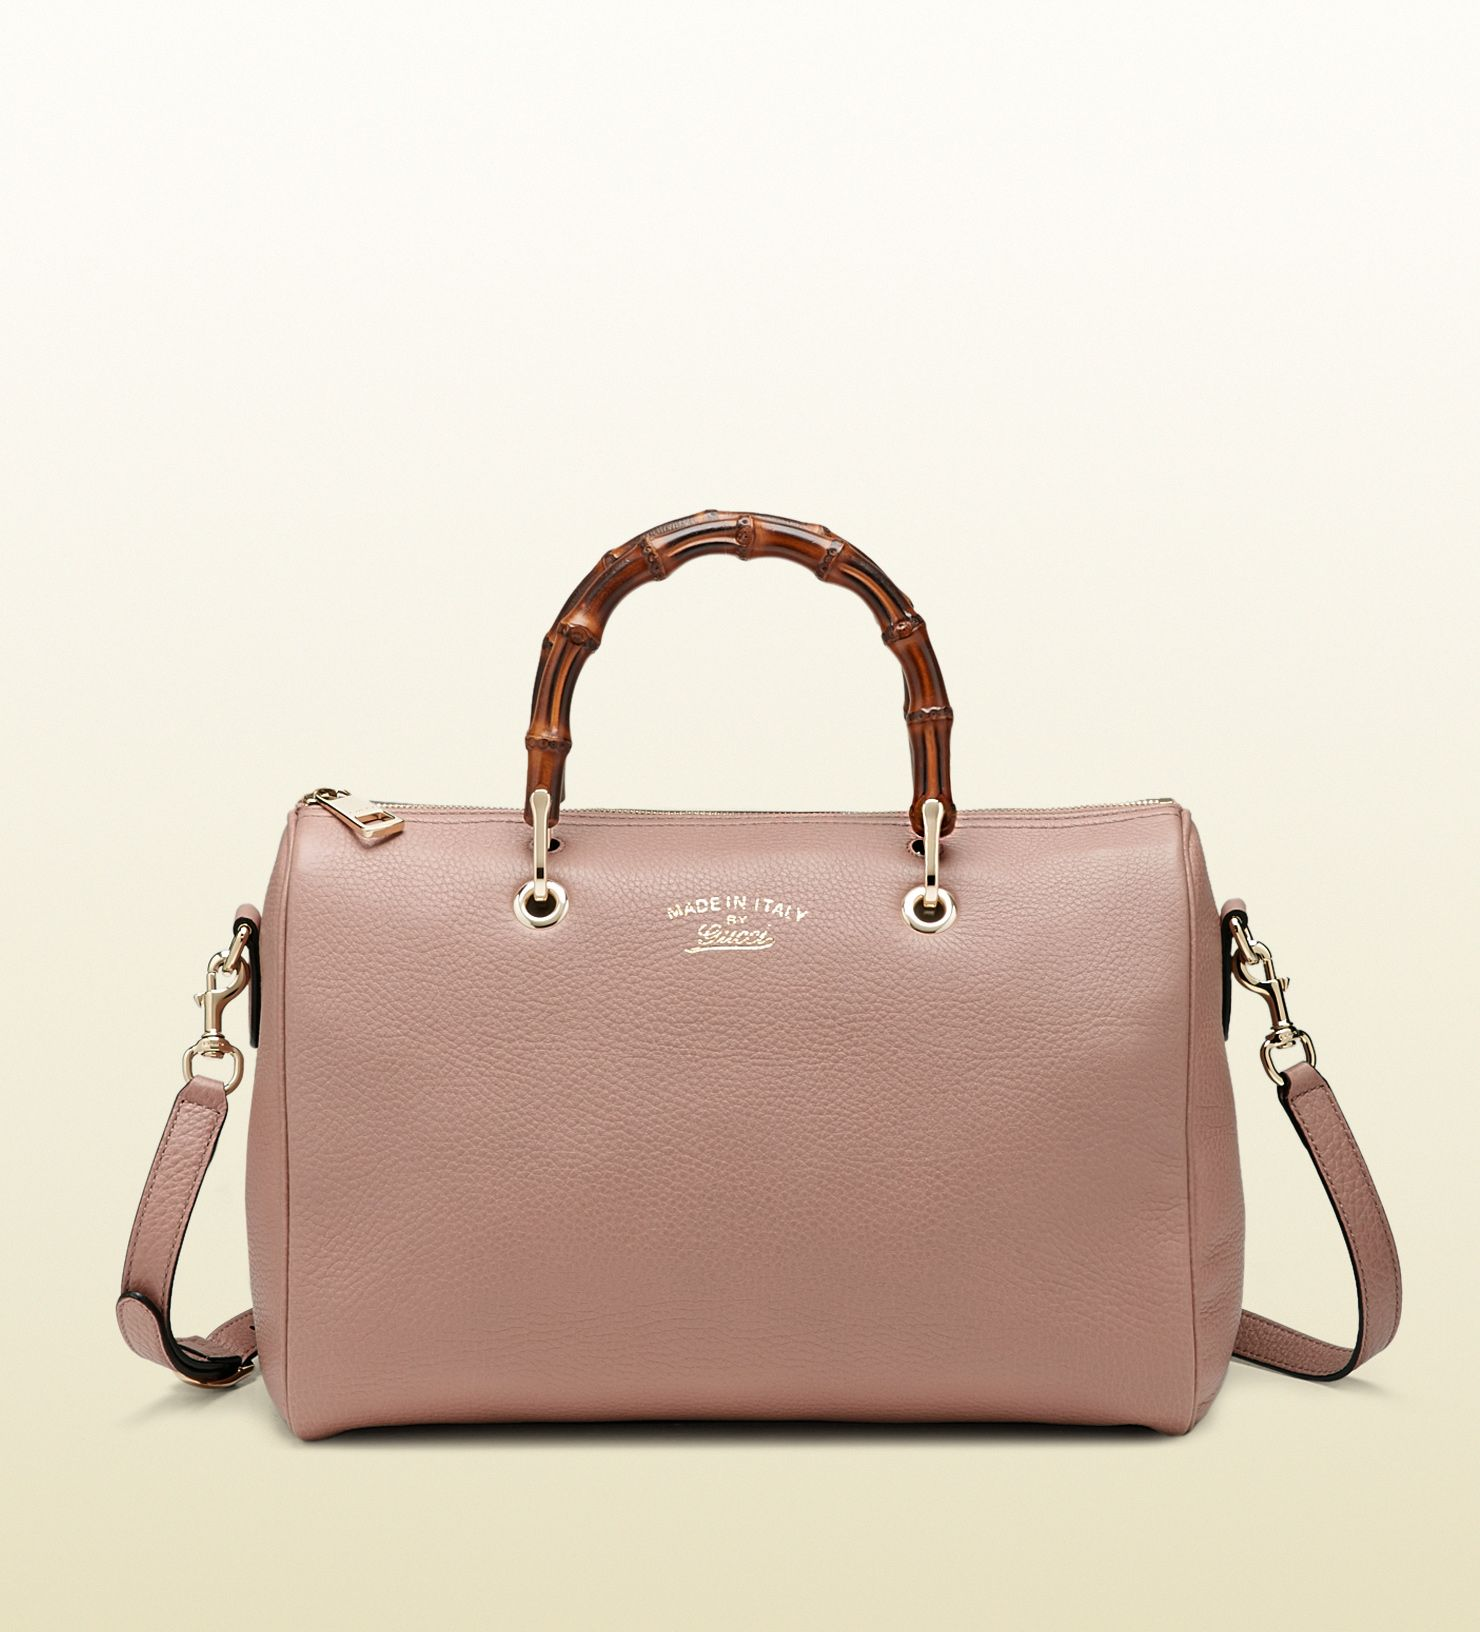 6725d1b58d24 gucci bamboo boston review - Google Search | Bags | Pinterest | Gucci bamboo,  Gucci